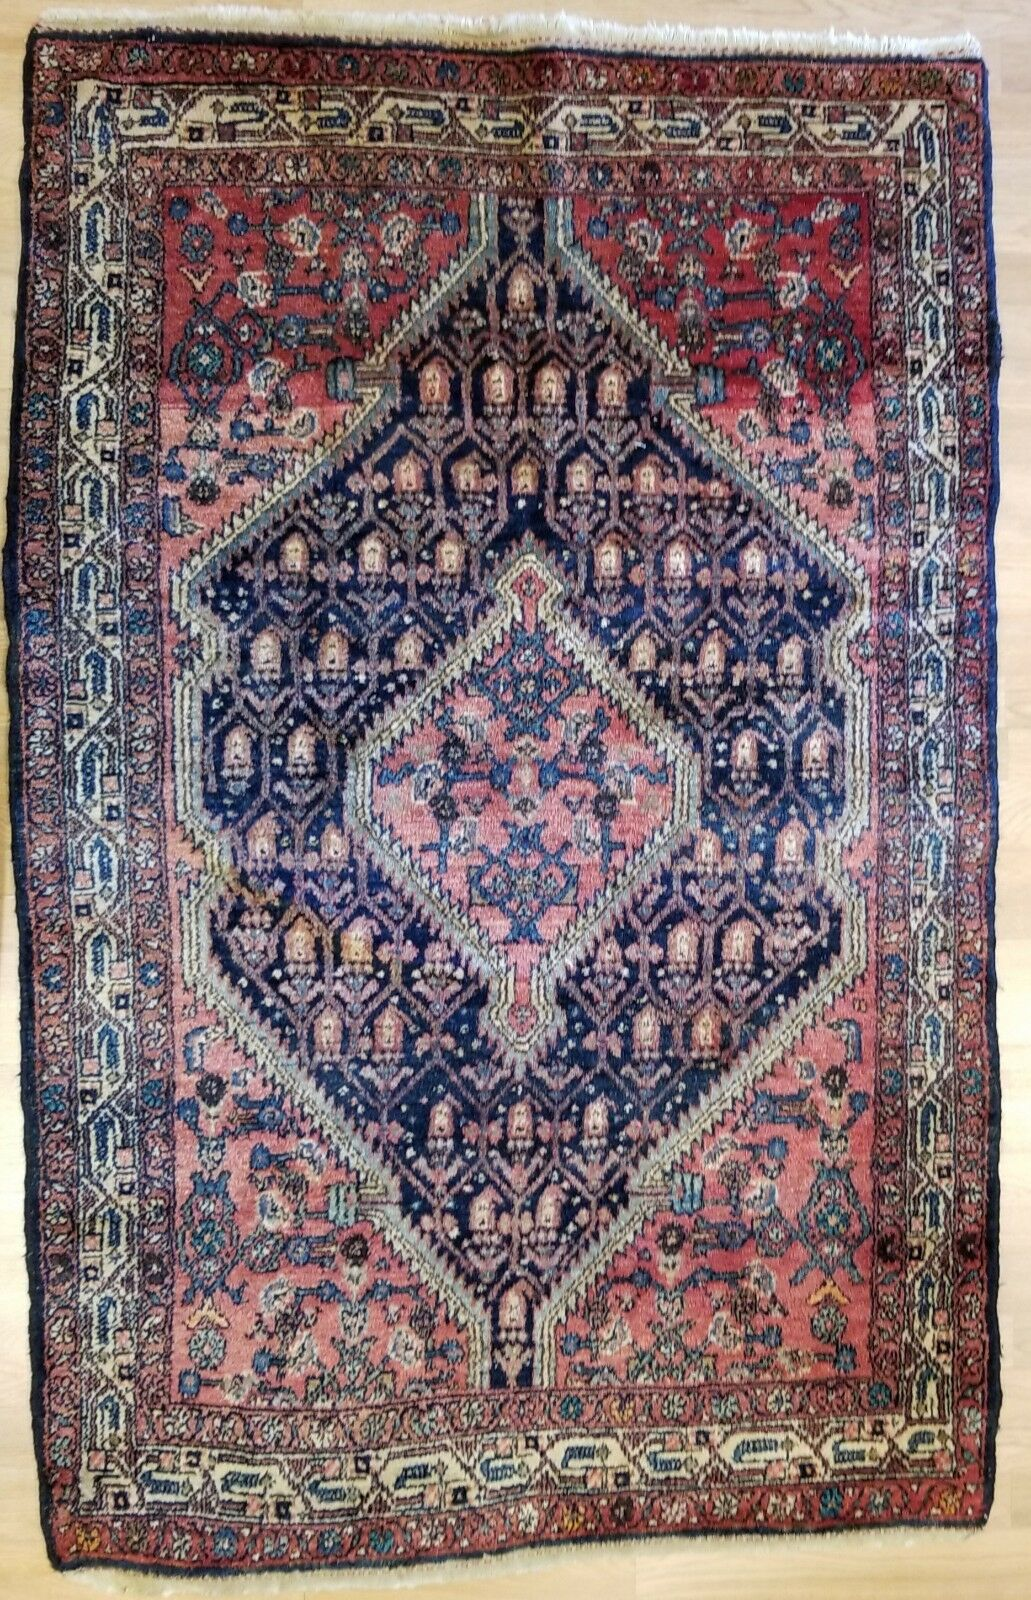 Spectacular Senneh - 1920s Antique Oriental Rug - Nomadic Carpet - 3'9